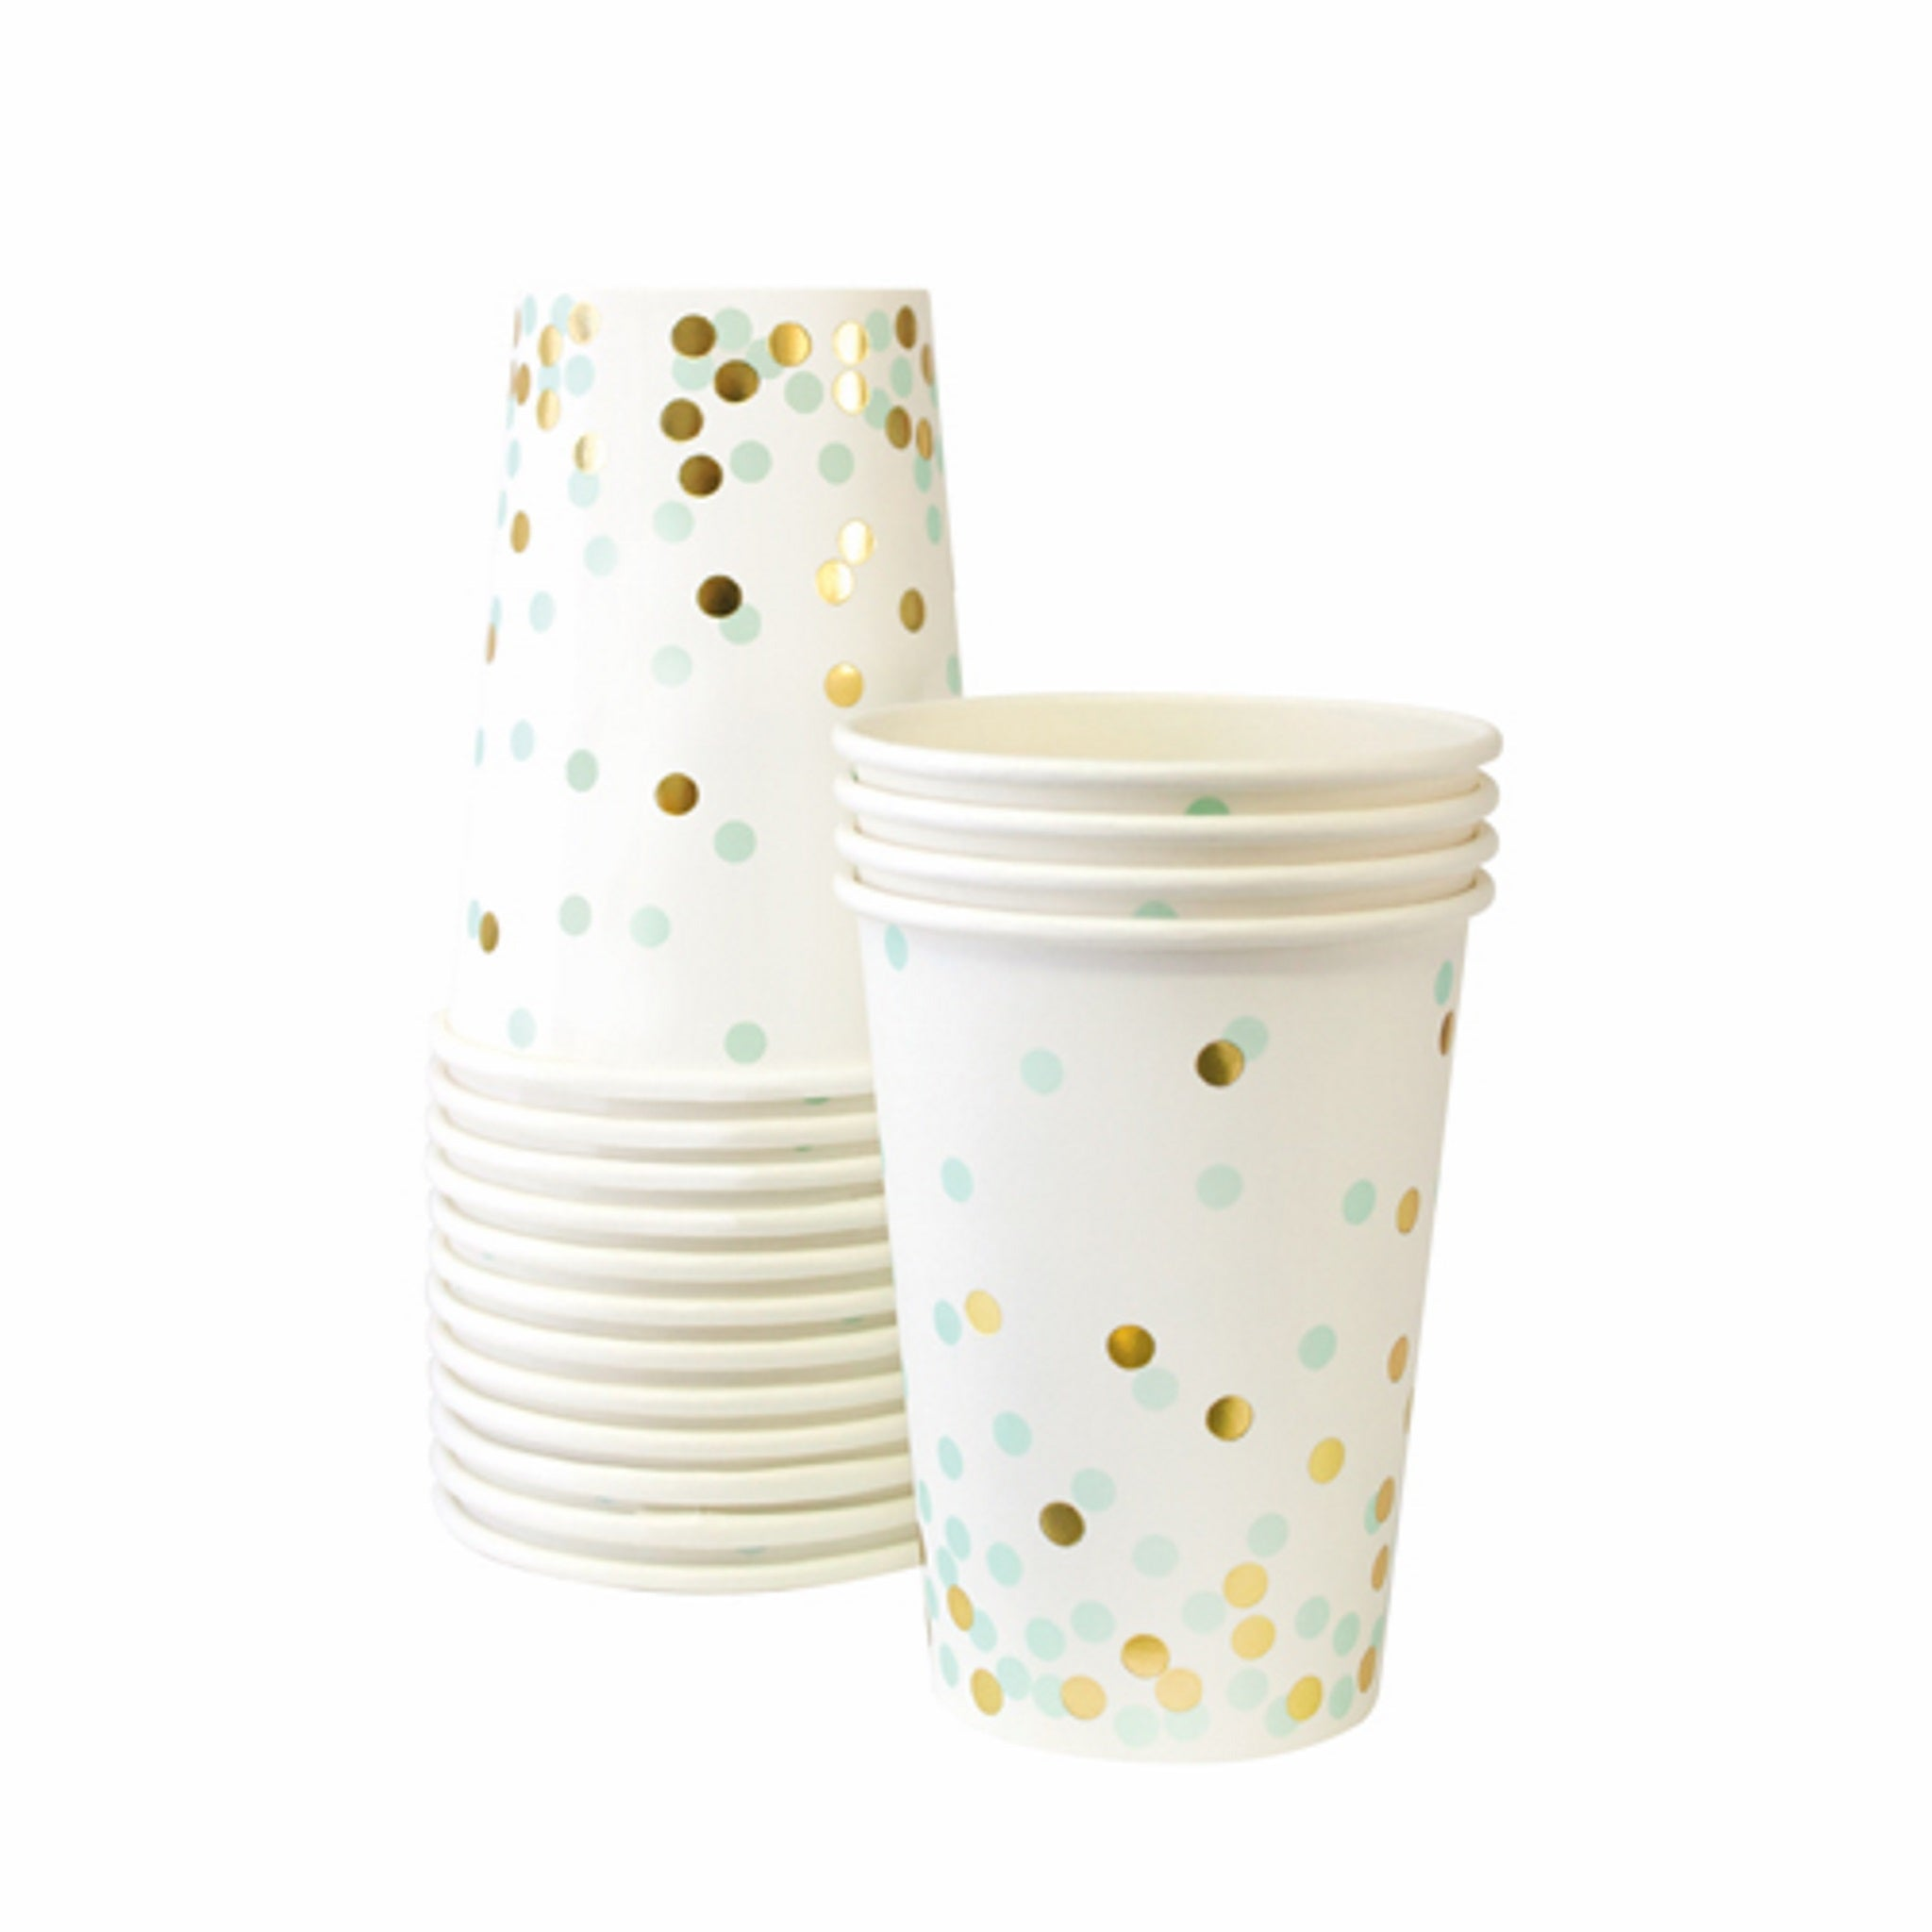 Mint & Gold Confetti Party Cup (12 pack)